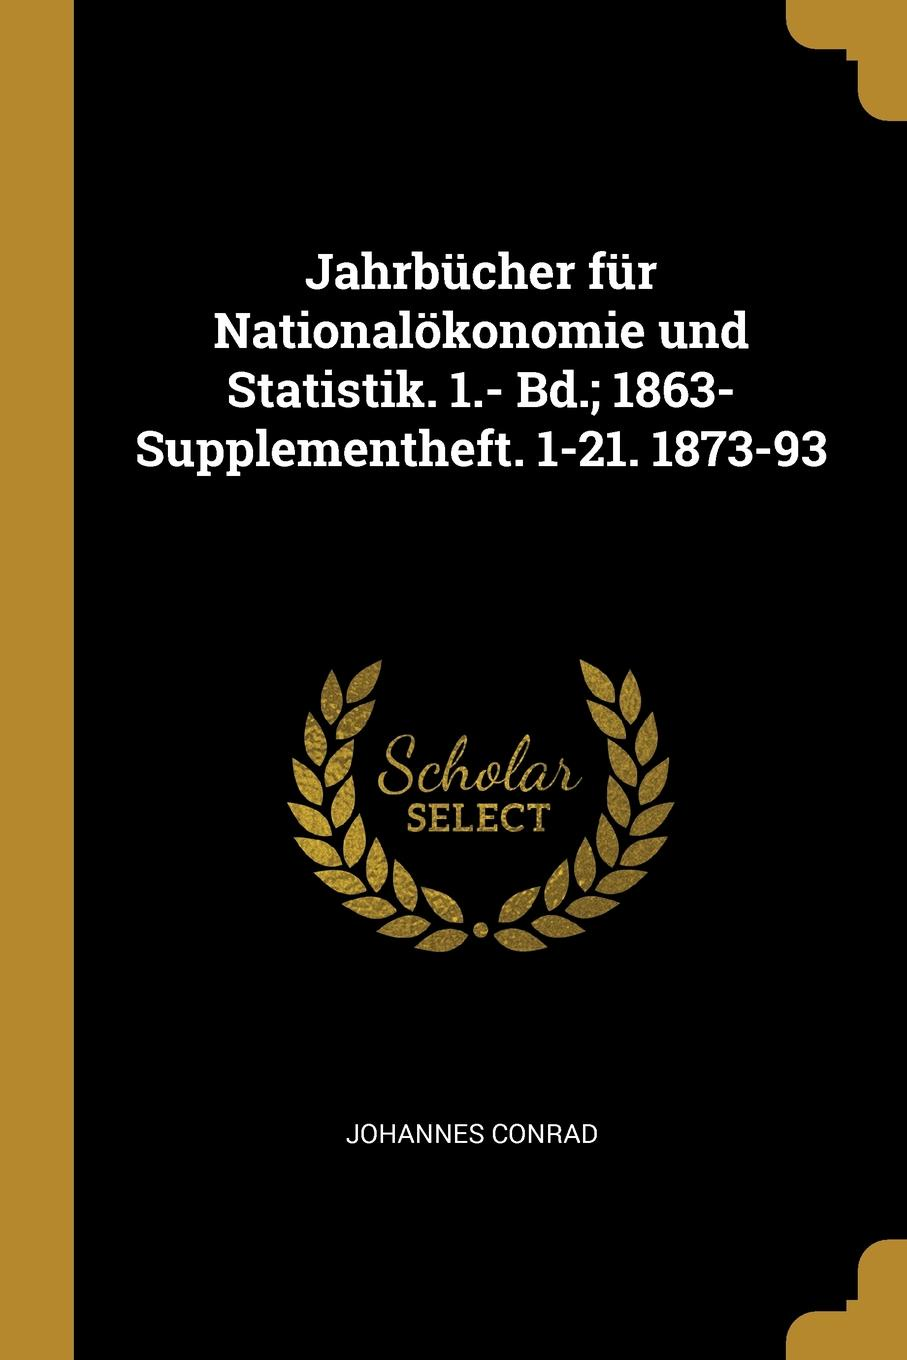 Jahrbucher fur Nationalokonomie und Statistik. 1.- Bd.; 1863- Supplementheft. 1-21. 1873-93 This work has been selected by scholars as being culturally...